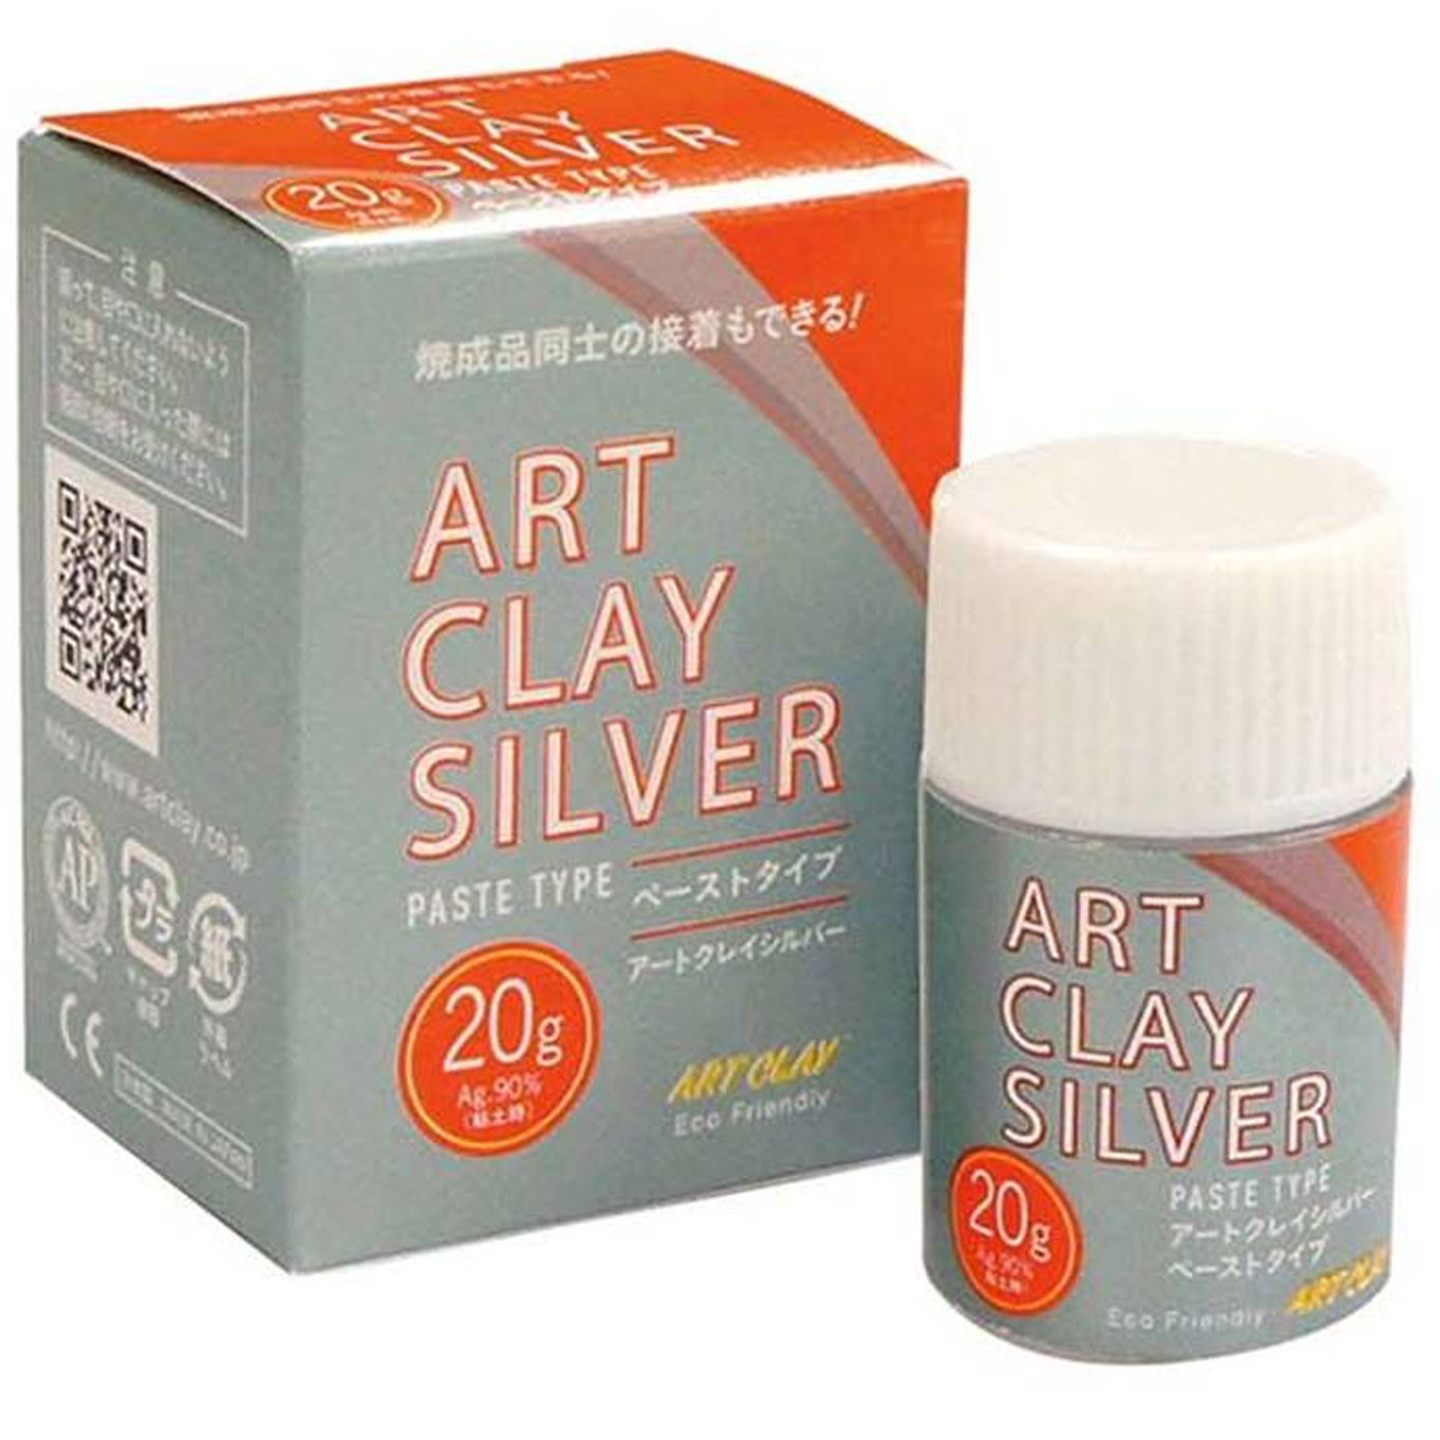 Art Clay Gold Paste 22k Gold Slip Glaze for Porcelain Glass Precious Metal Clay